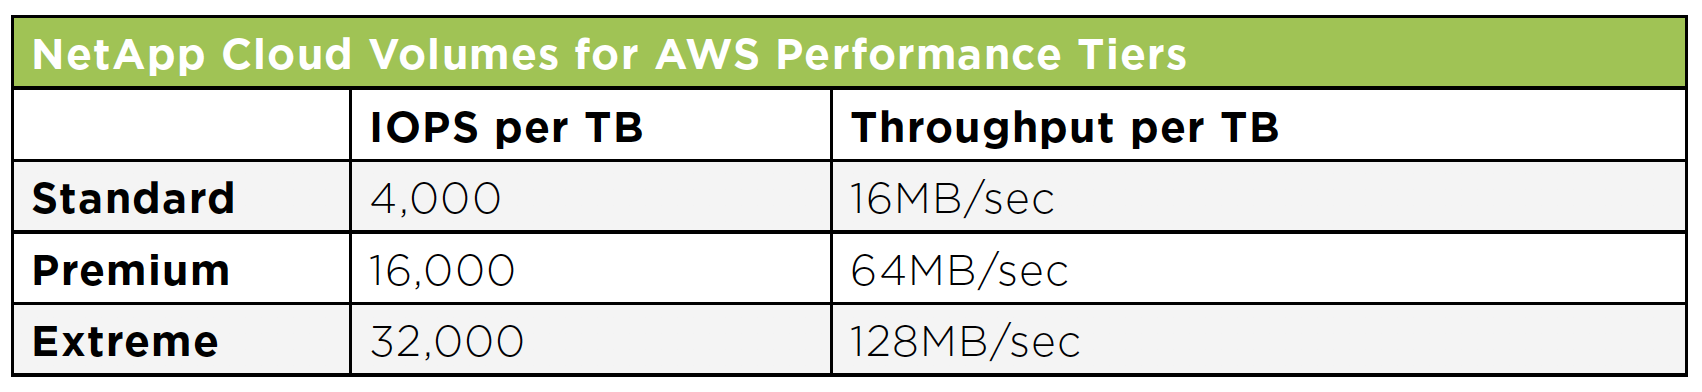 NetApp Cloud Volumes for AWS Performance Tiers